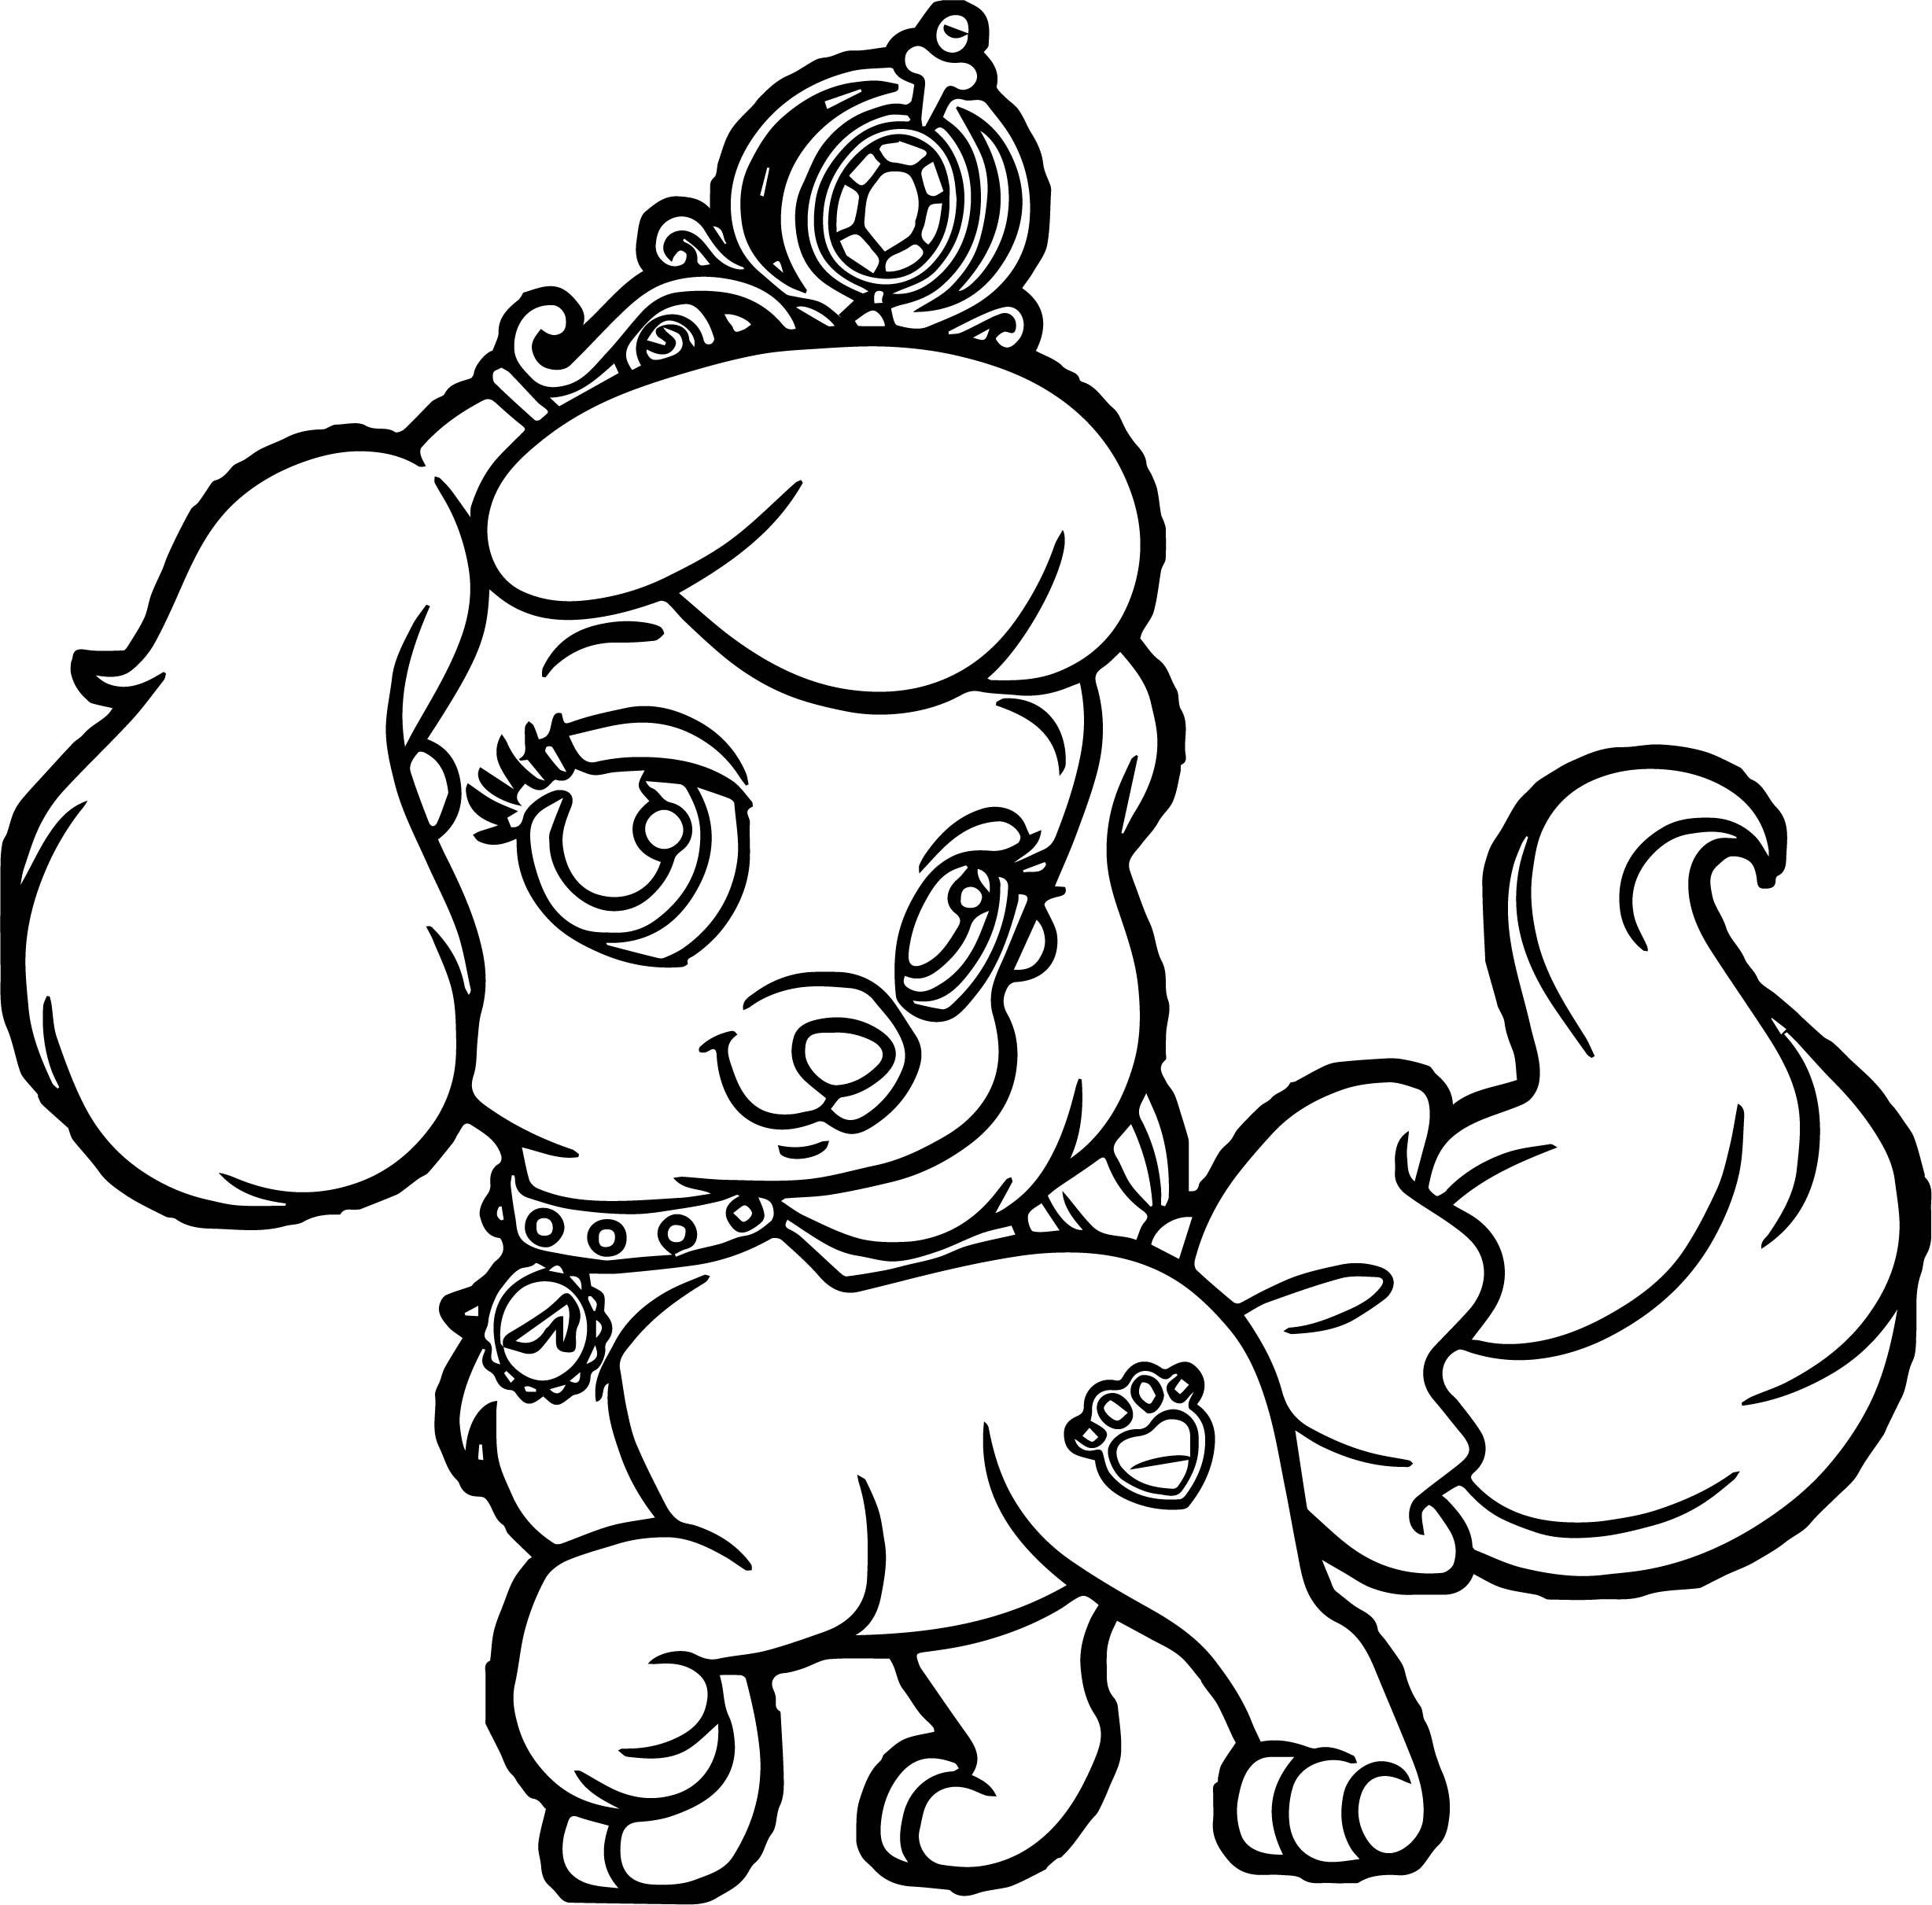 Girl Pumpkin Pup Puppy Dog Coloring Page Puppy Coloring Pages Animal Coloring Pages Dog Coloring Book